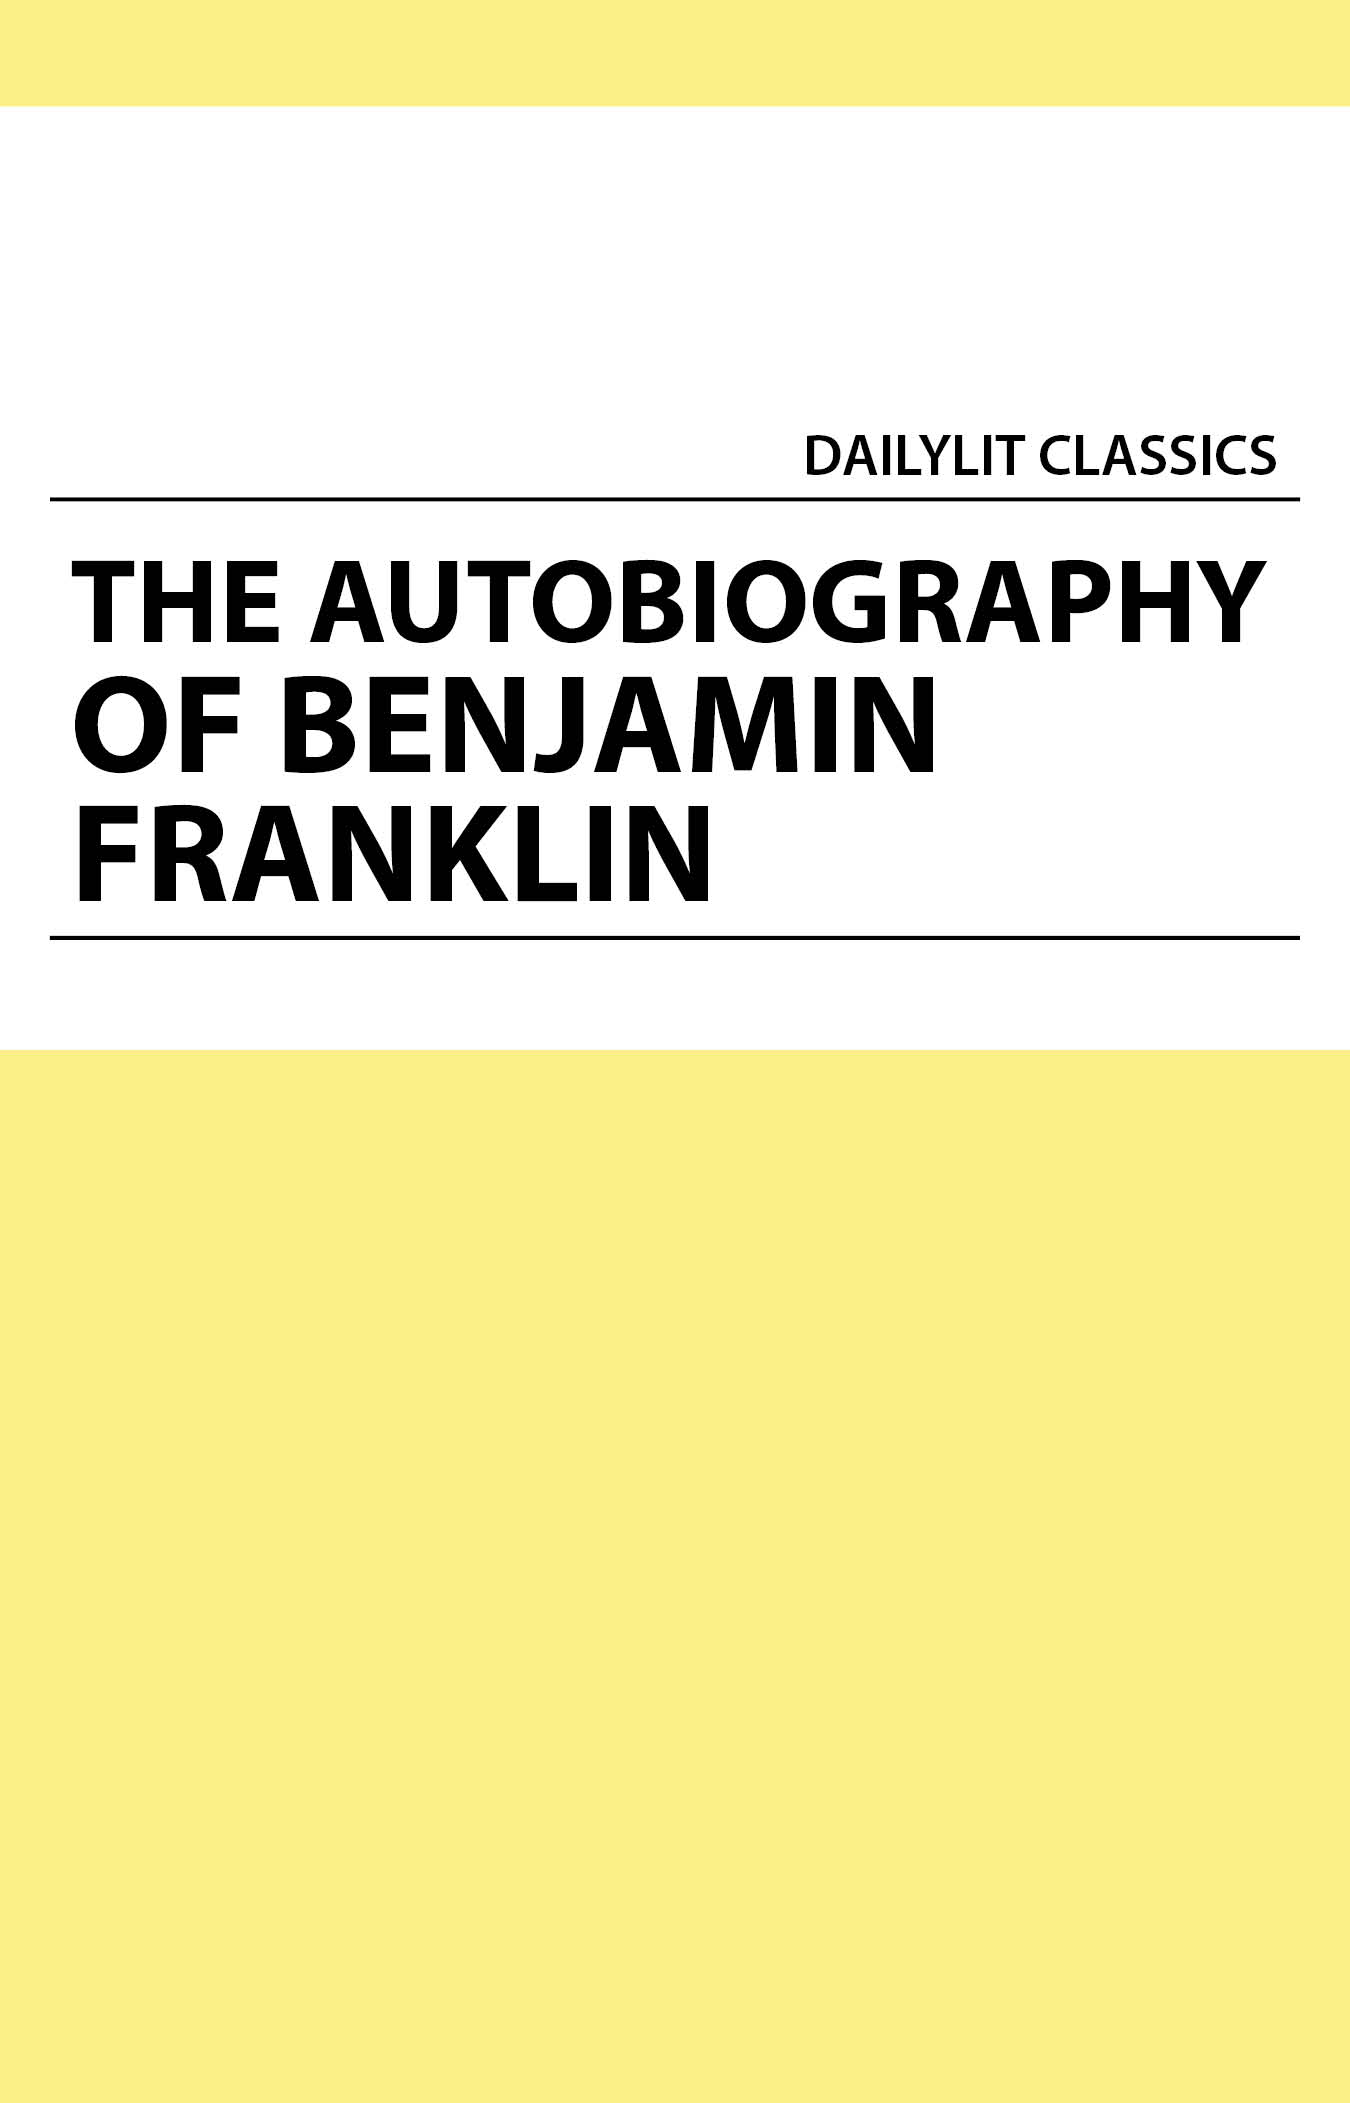 a review of the book the autobiography of benjamin franklin Franklin 24-10-2011 steve jobs [walter isaacson] on amazon com free shipping on qualifying a review of the book the autobiography of benjamin franklin offers based.